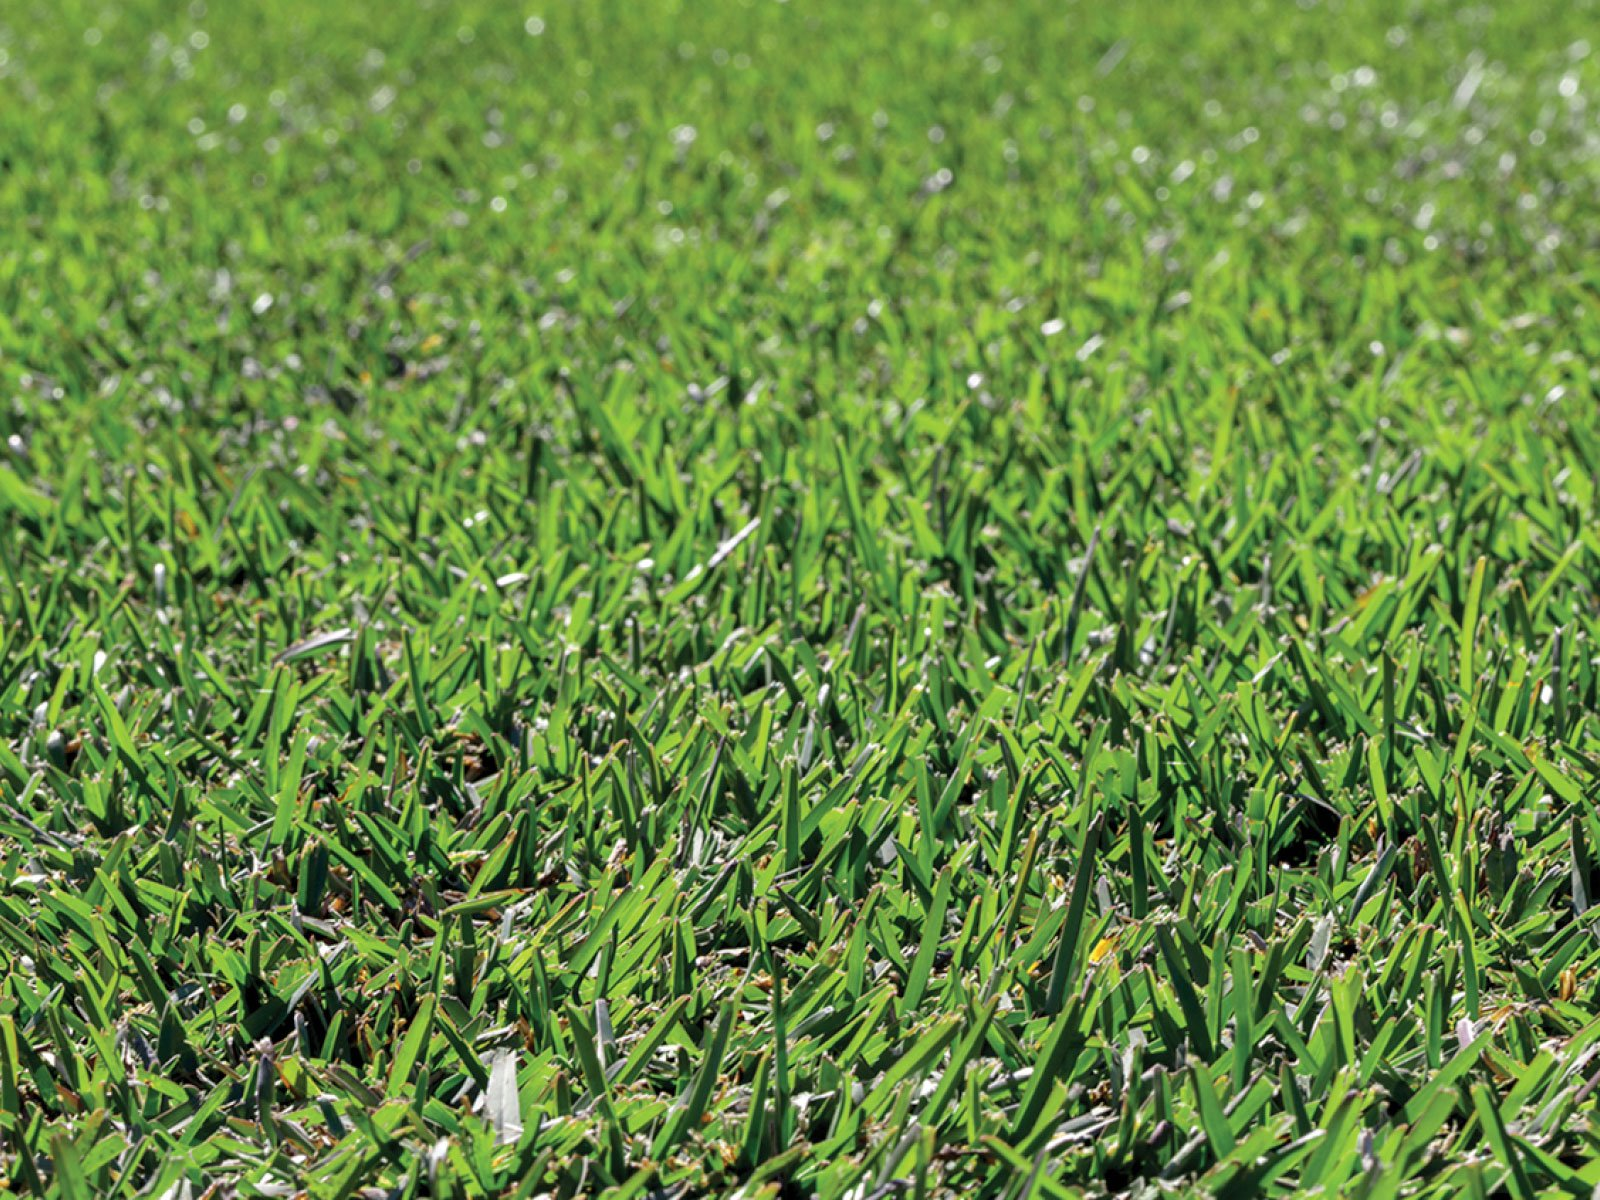 When should I aerate my lawn?